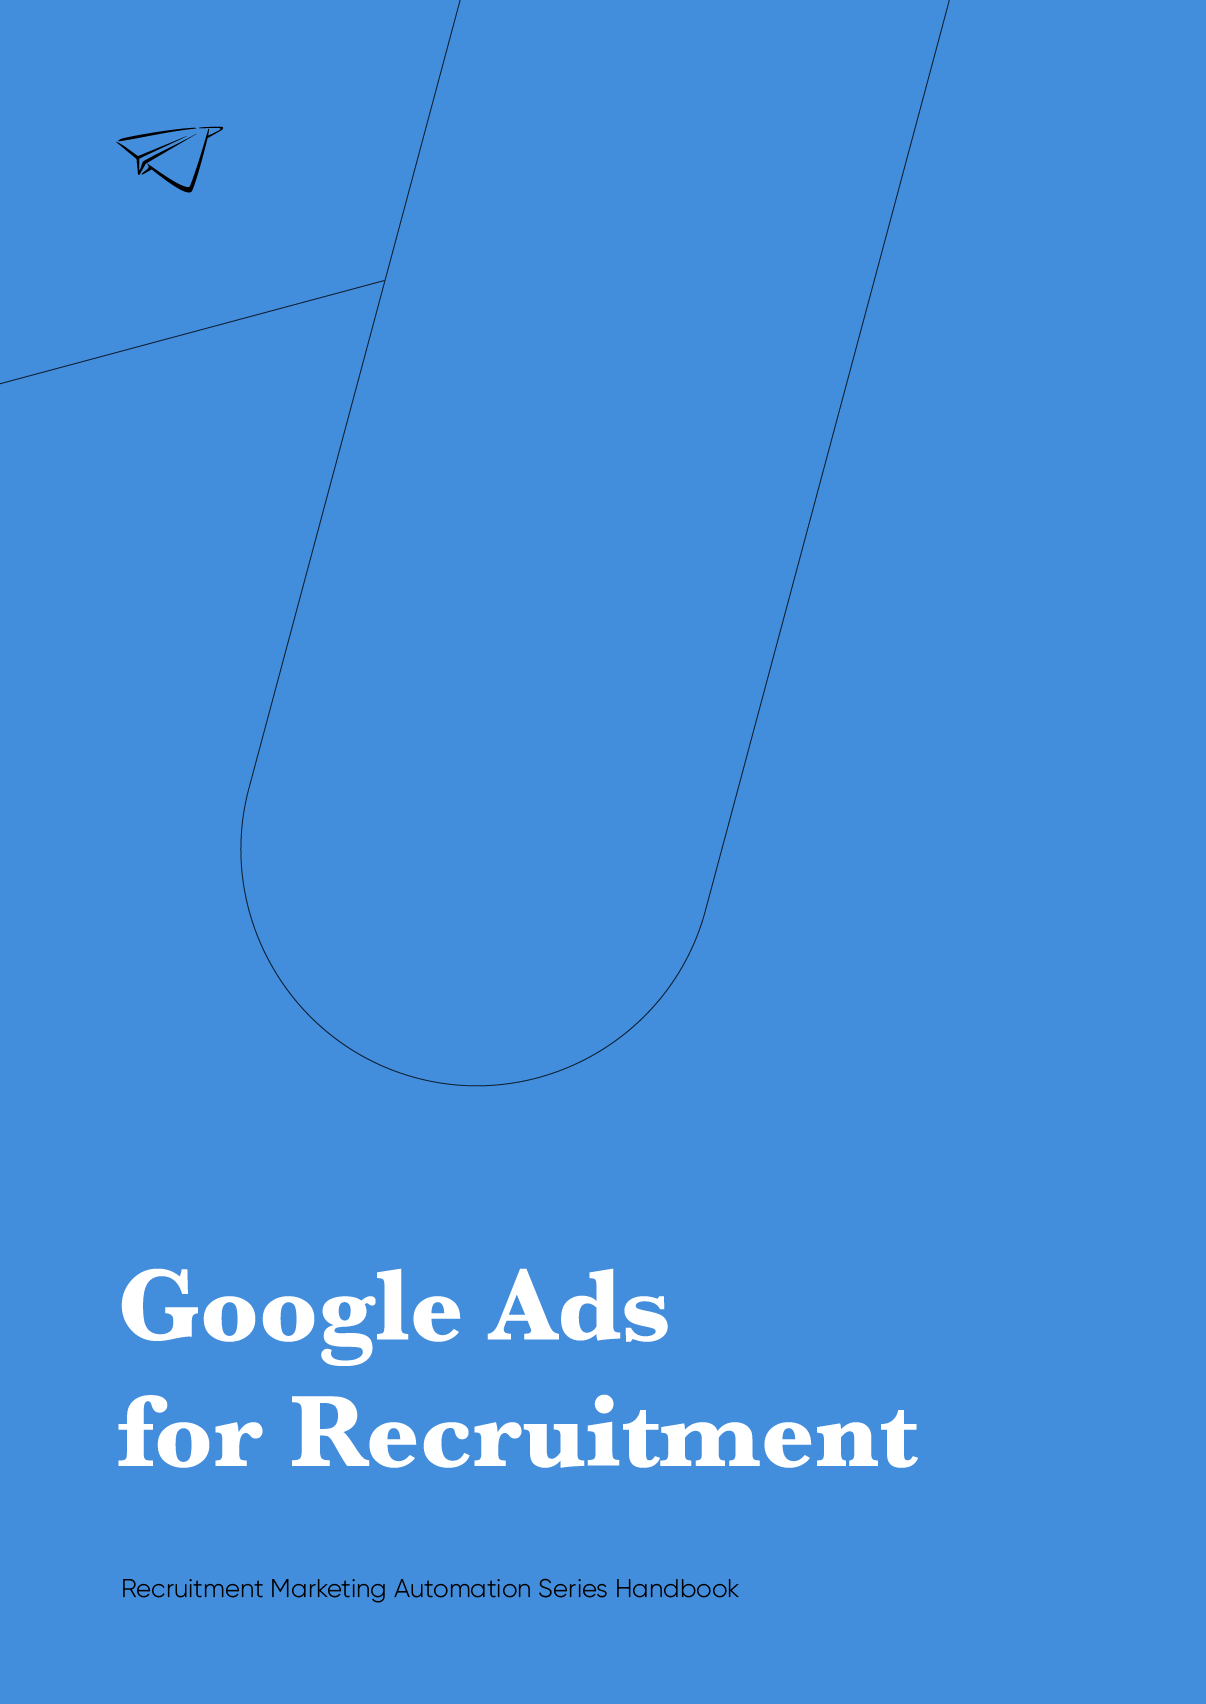 Google Ads for Recruitment ebook